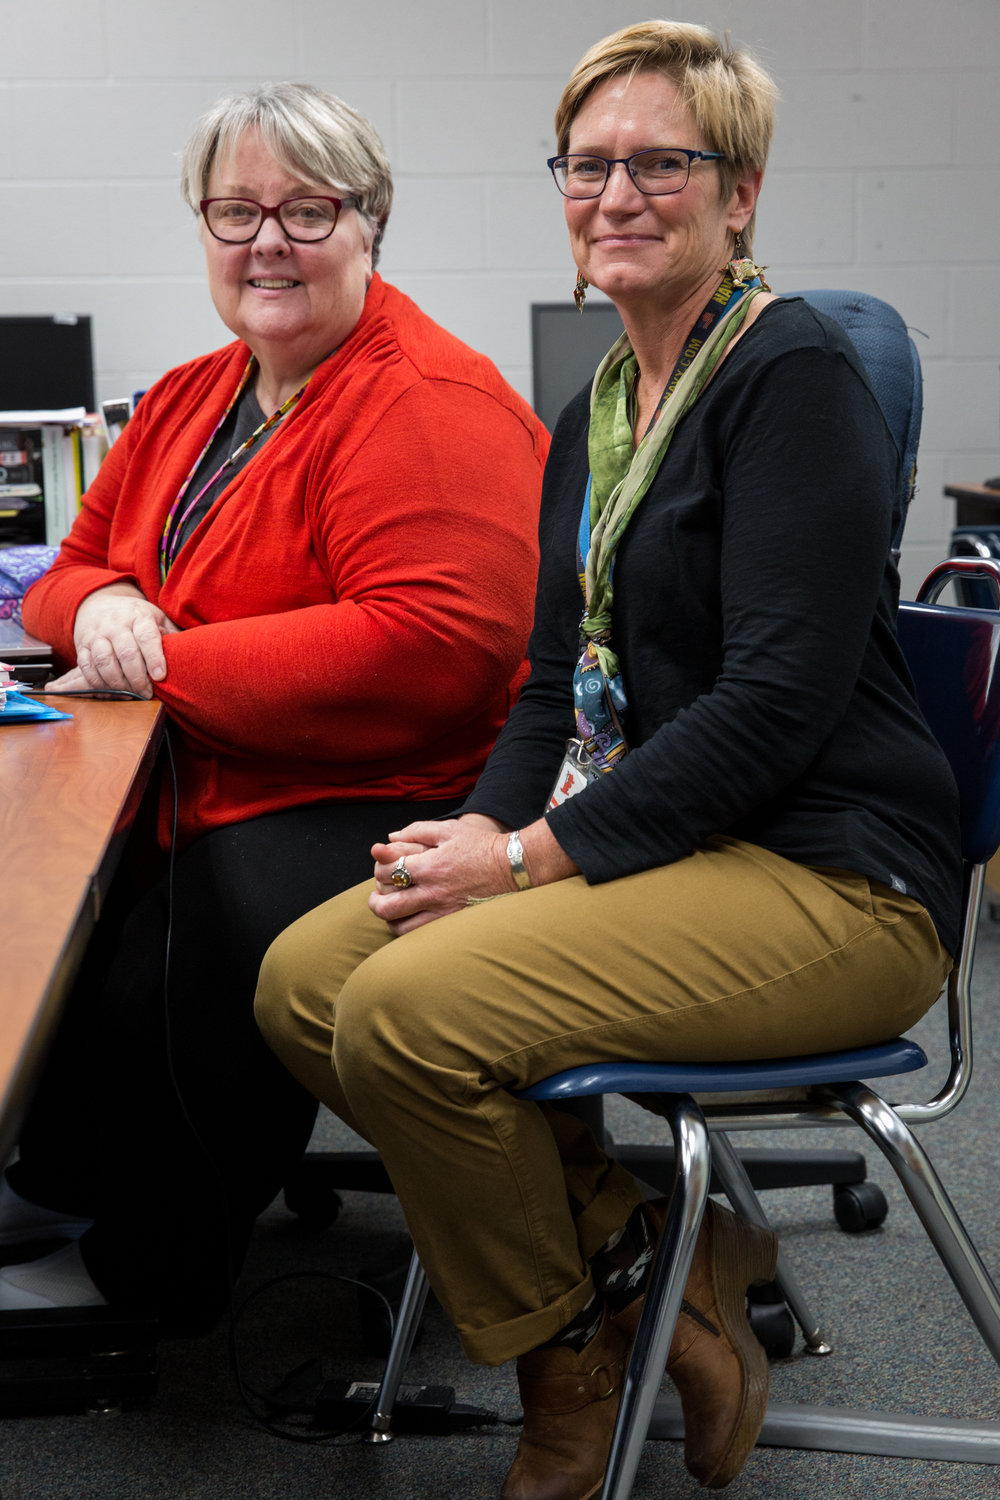 South Webster High School teachers Judy Ellsesser, left, and Cyndy Hykes, right, pose for a portrait in Judy's classroom. The pair designed a class for their junior students to learn about the opioid epidemic. The students read the book Dreamland by Sam Quinones, listen to speakers involved with the epidemic, and work on a project to give back to their community.